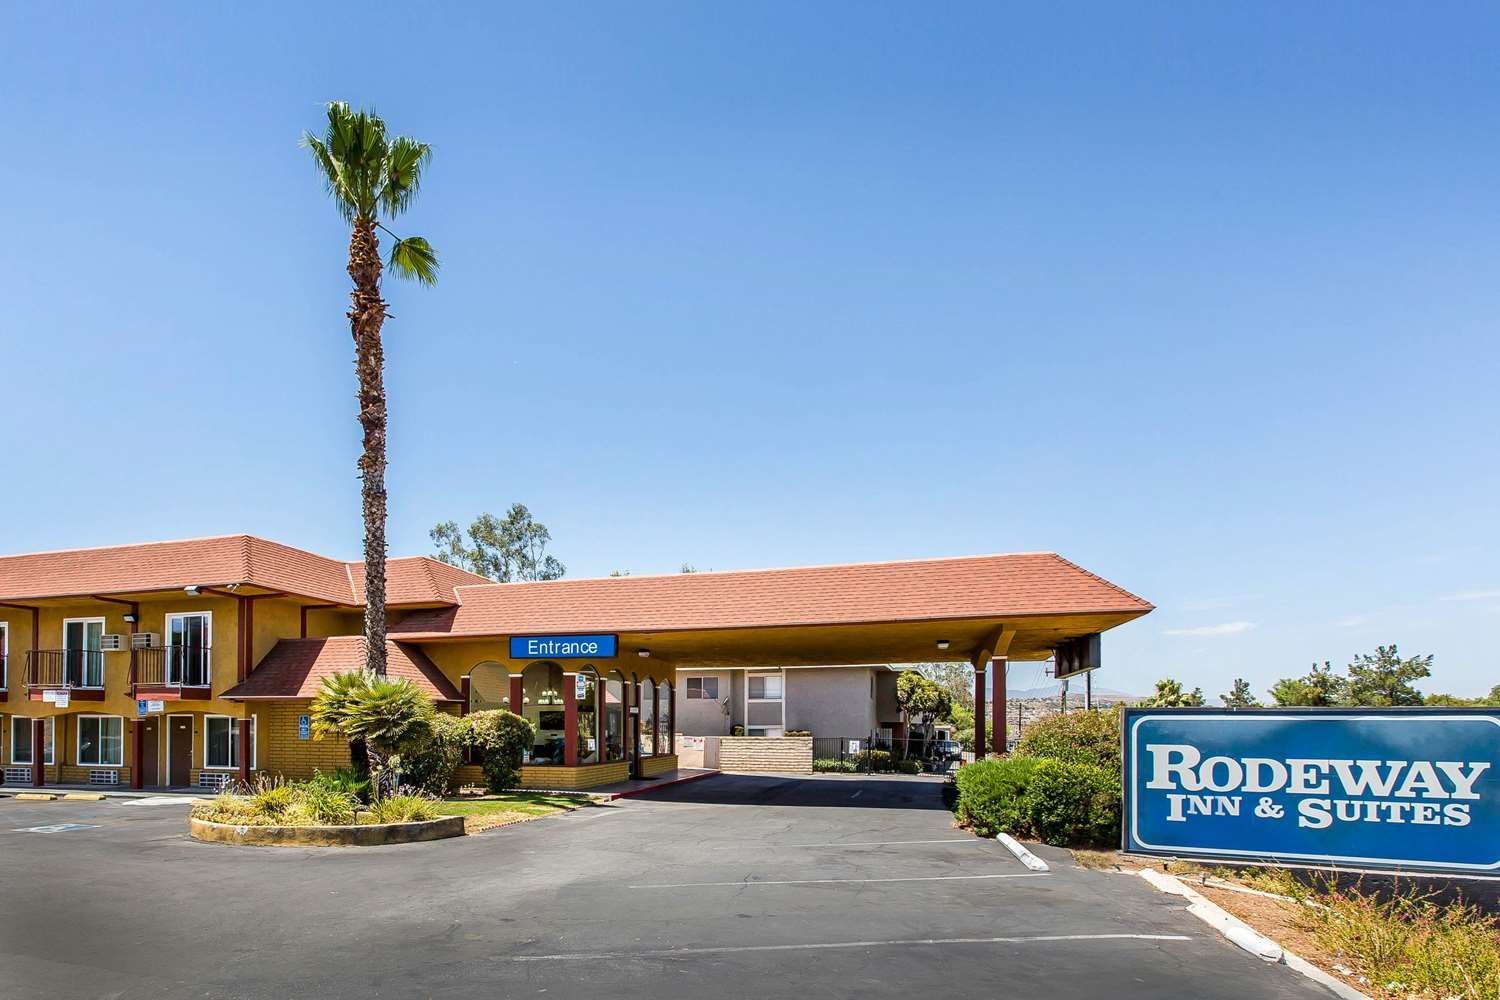 Rodeway Inn & Suites Canyon Lake